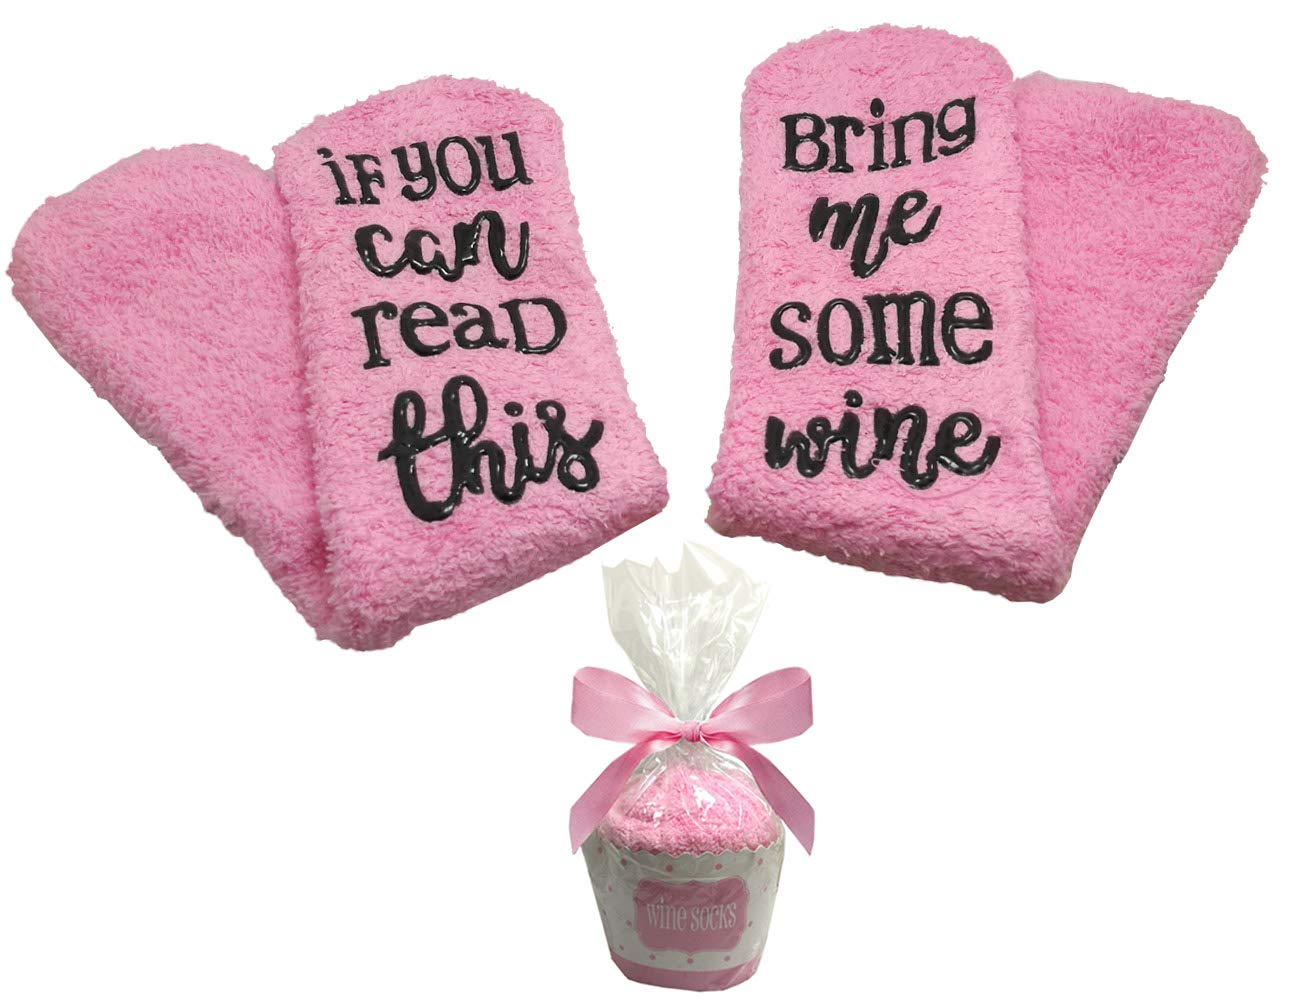 Wine Socks With Gift Packaging If You Can Read This Bring Me Some Wine Novelty Socks Funny Gifts for Her/Wife/Mom/Hostess/Wine Lovers Unique Joke Women Gift for Birthday, Christmas (Pink)